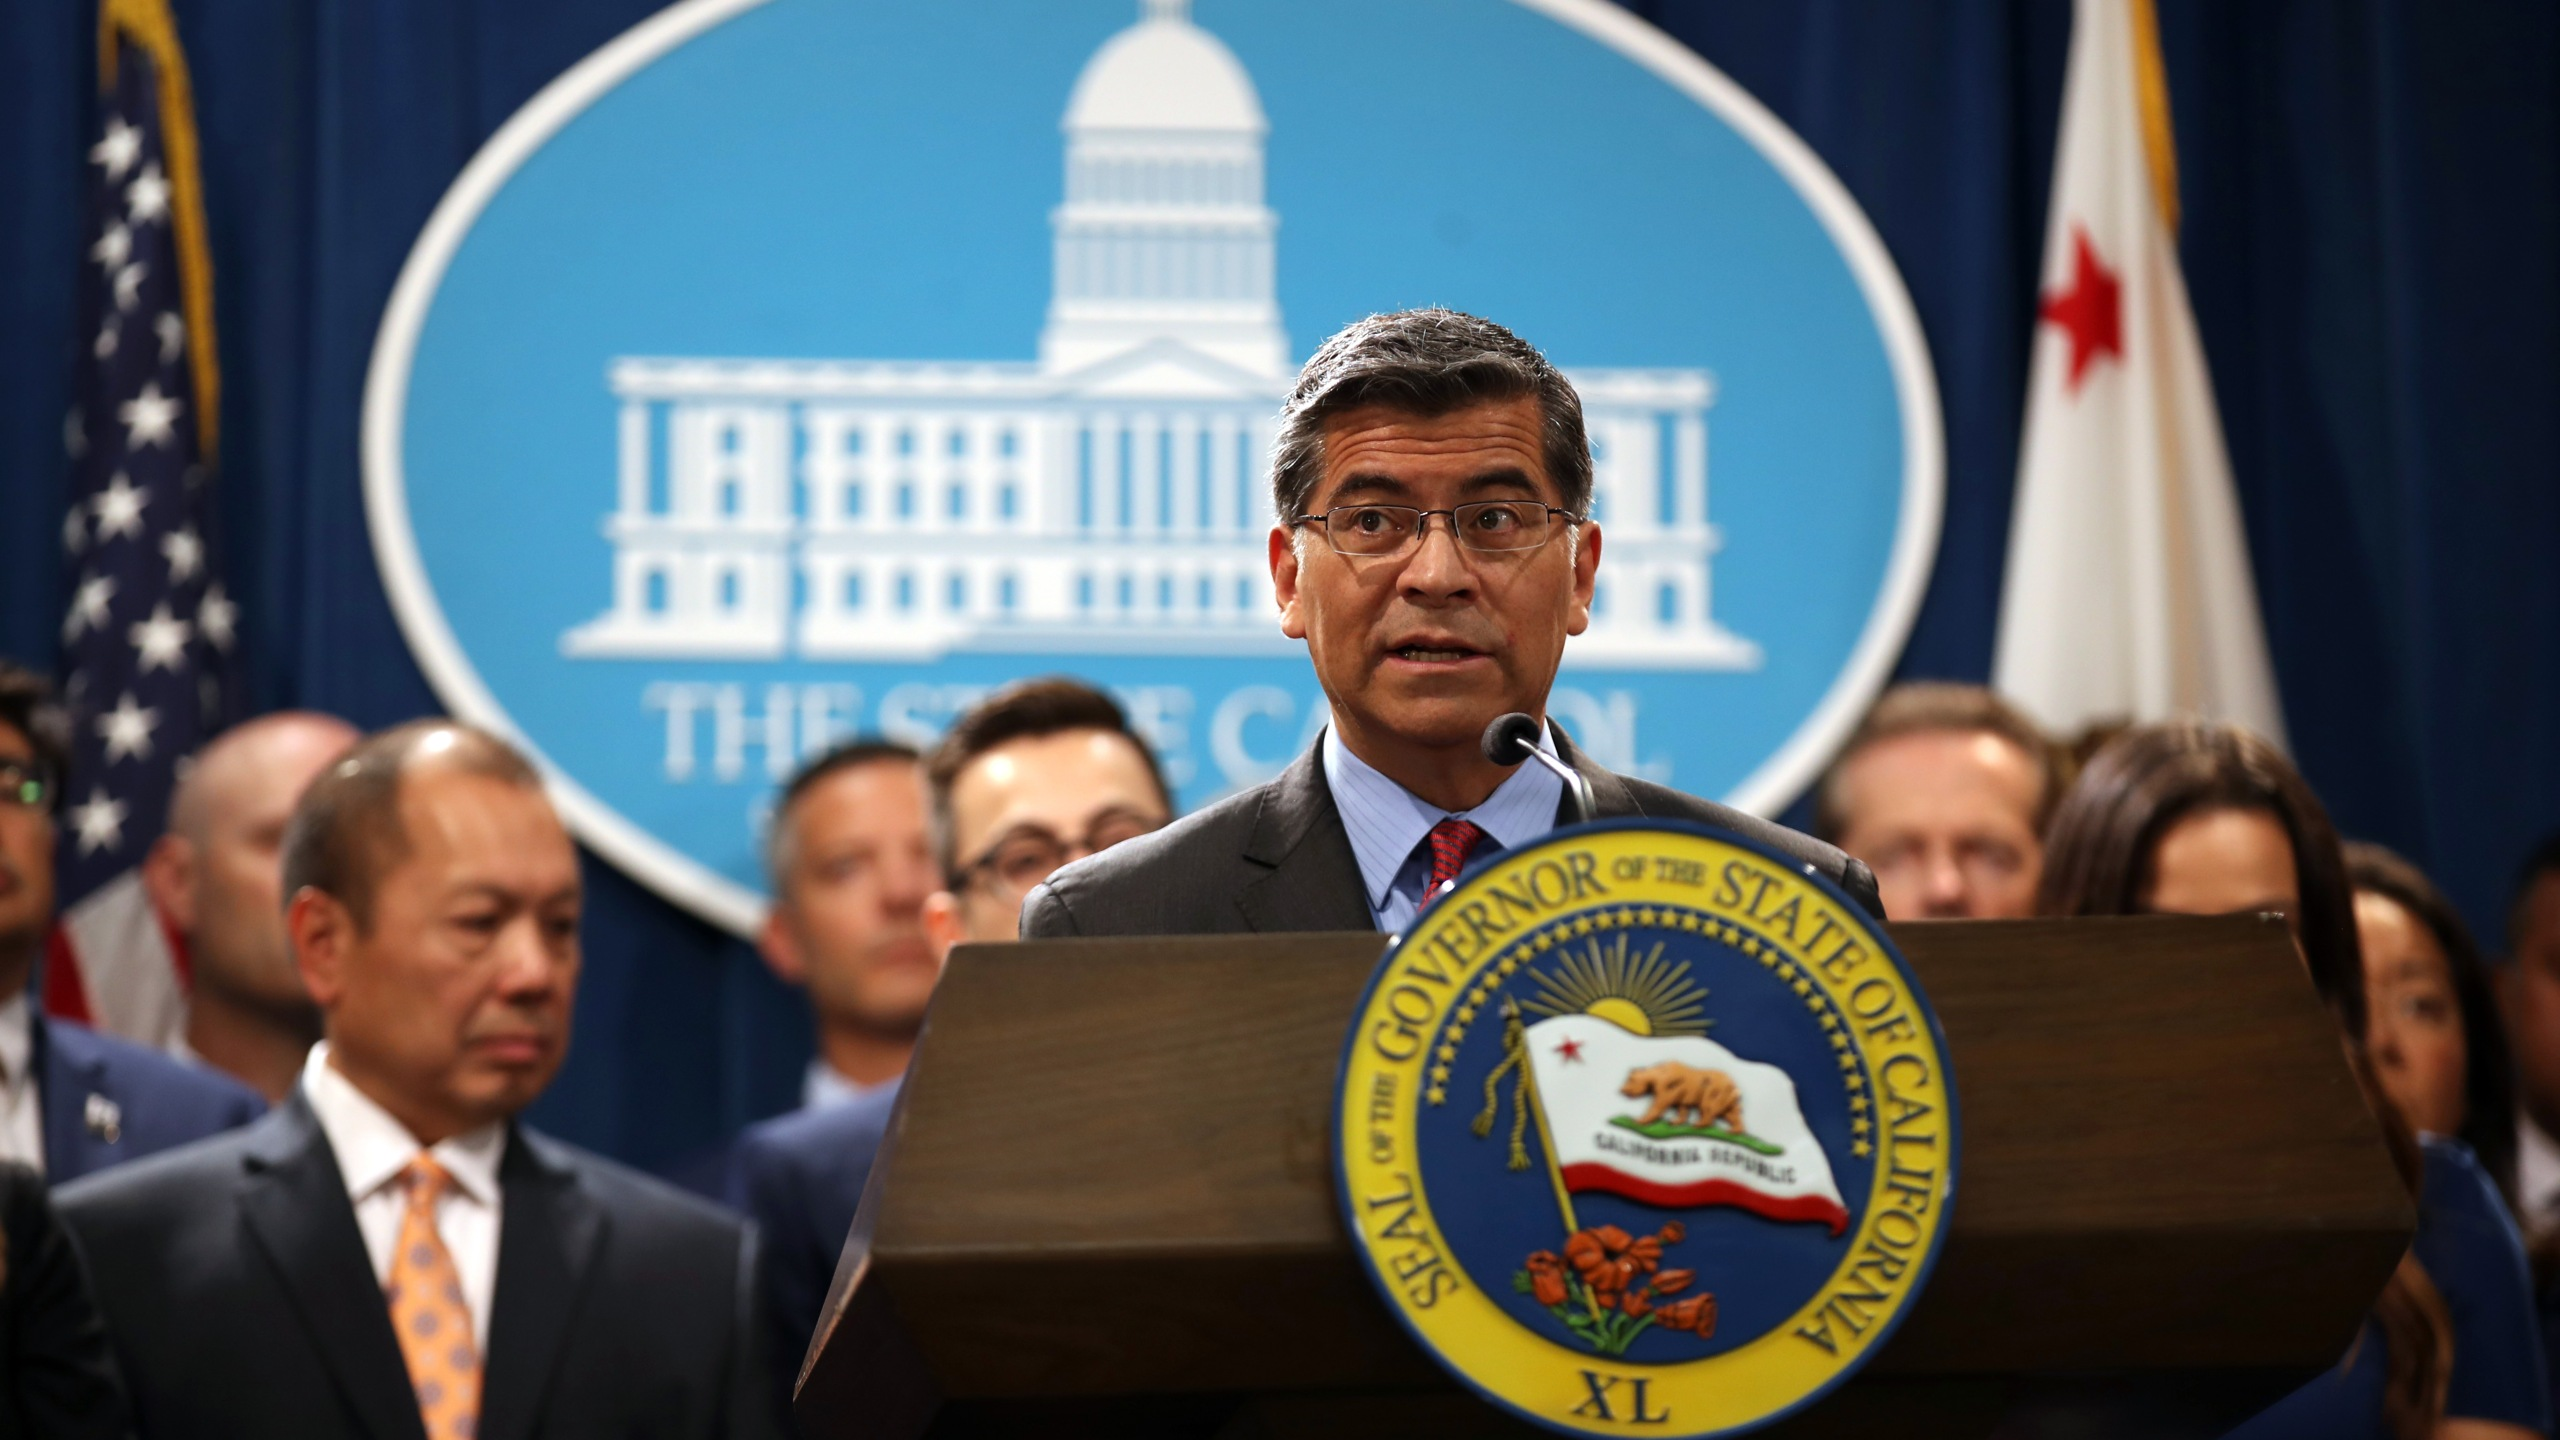 Attorney General Xavier Becerra speaks during a news conference with Gov. Gavin Newsom at the Capitol in Sacramento on Aug. 16, 2019. (Credit: Justin Sullivan / Getty Images)